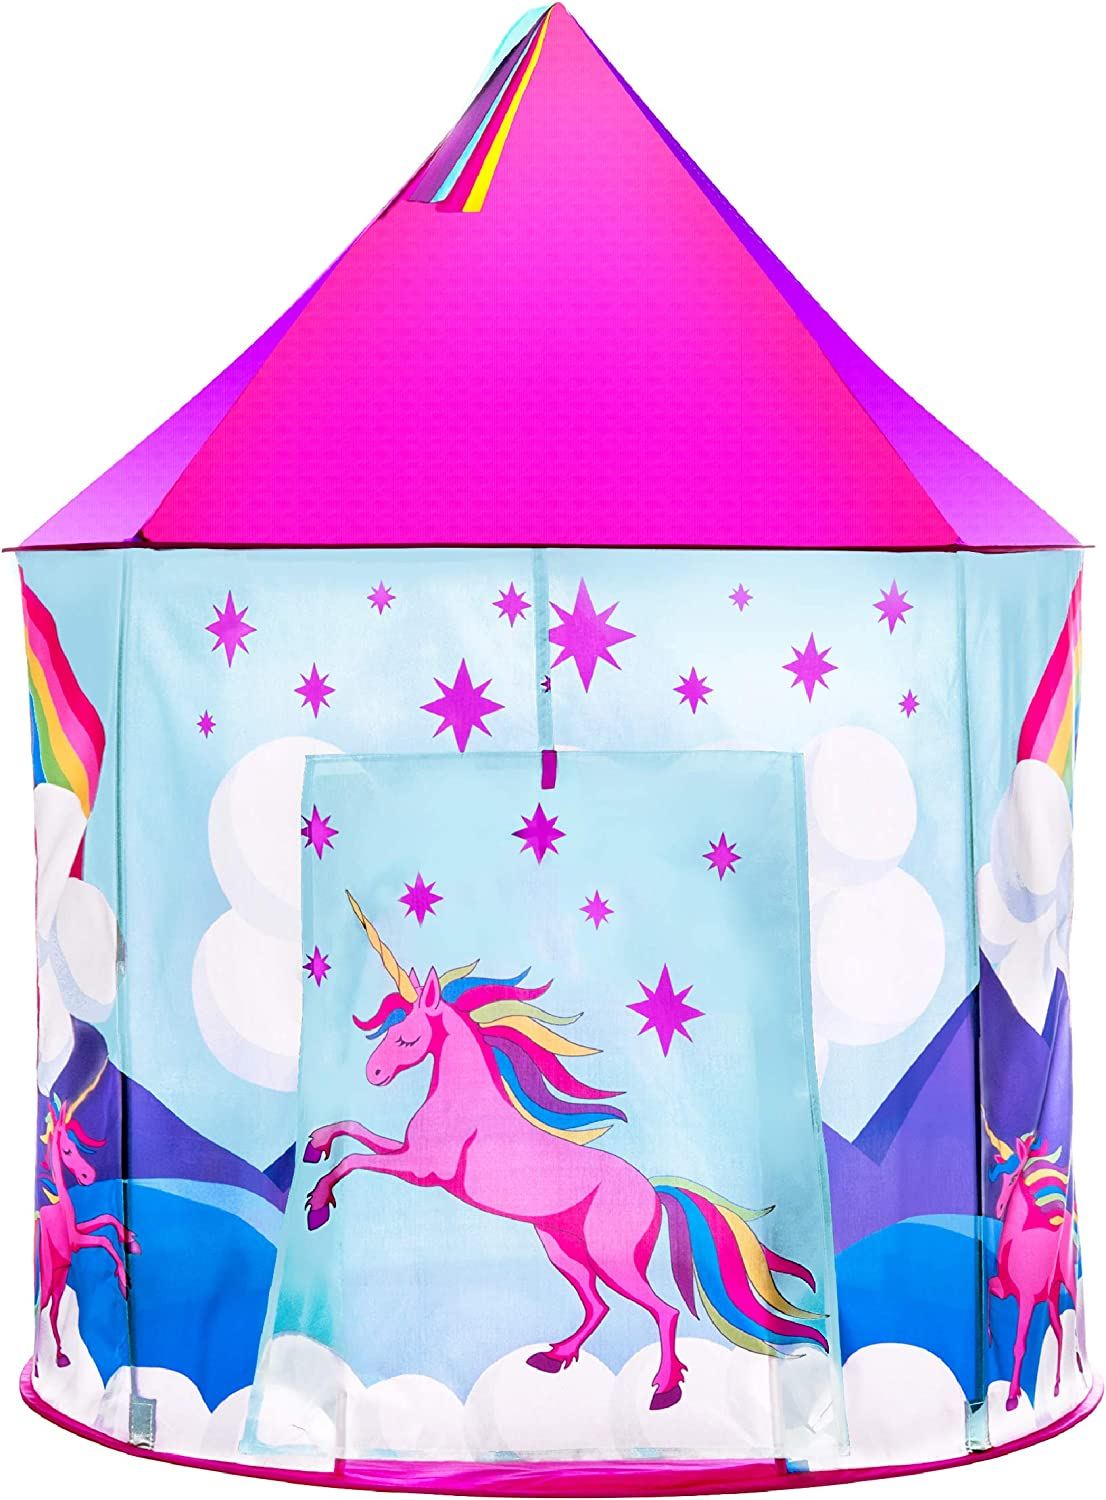 Top 15 Best Unicorn Toys And Gift For Girls in 2020 6